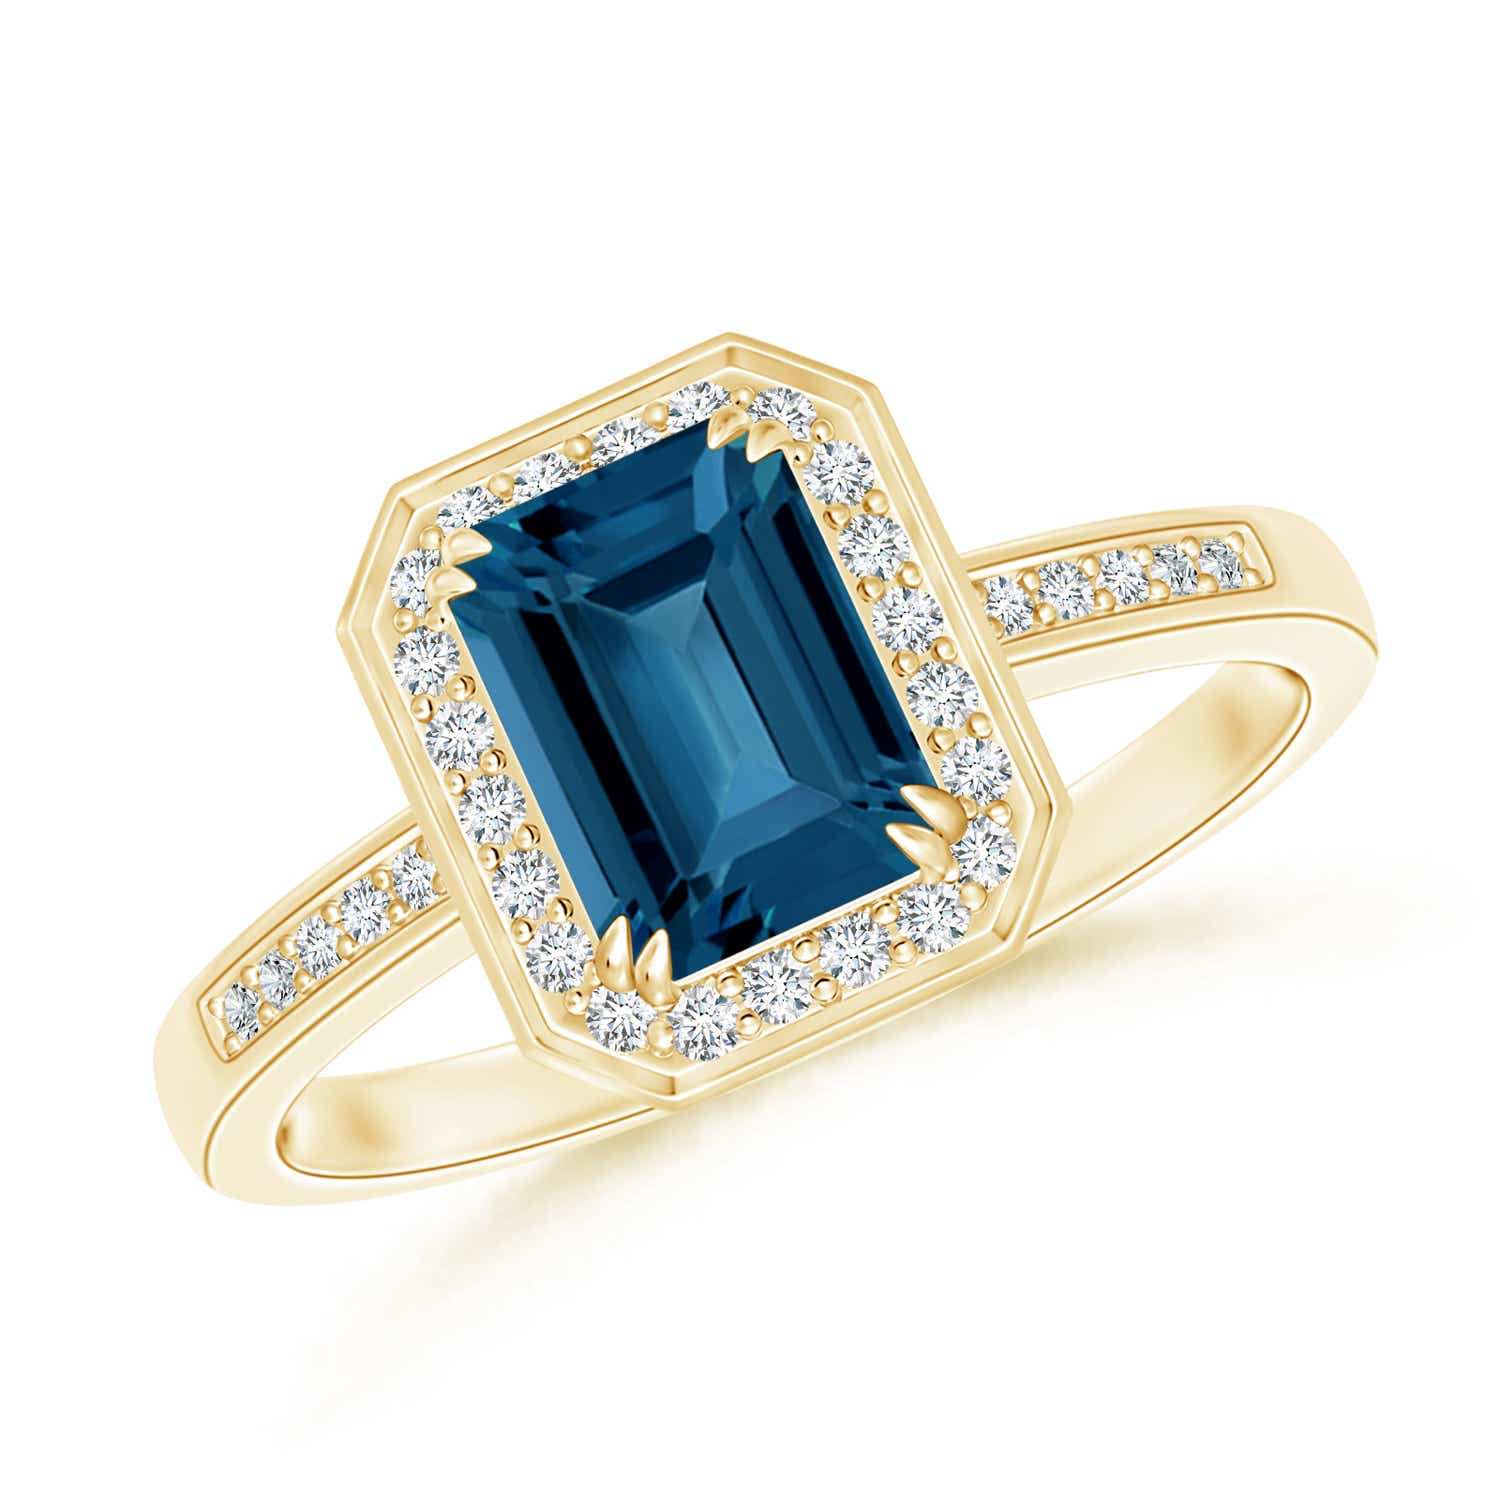 Angara Diamond Halo and Oval London Blue Topaz Engagement Ring in White Gold PK6x9p2